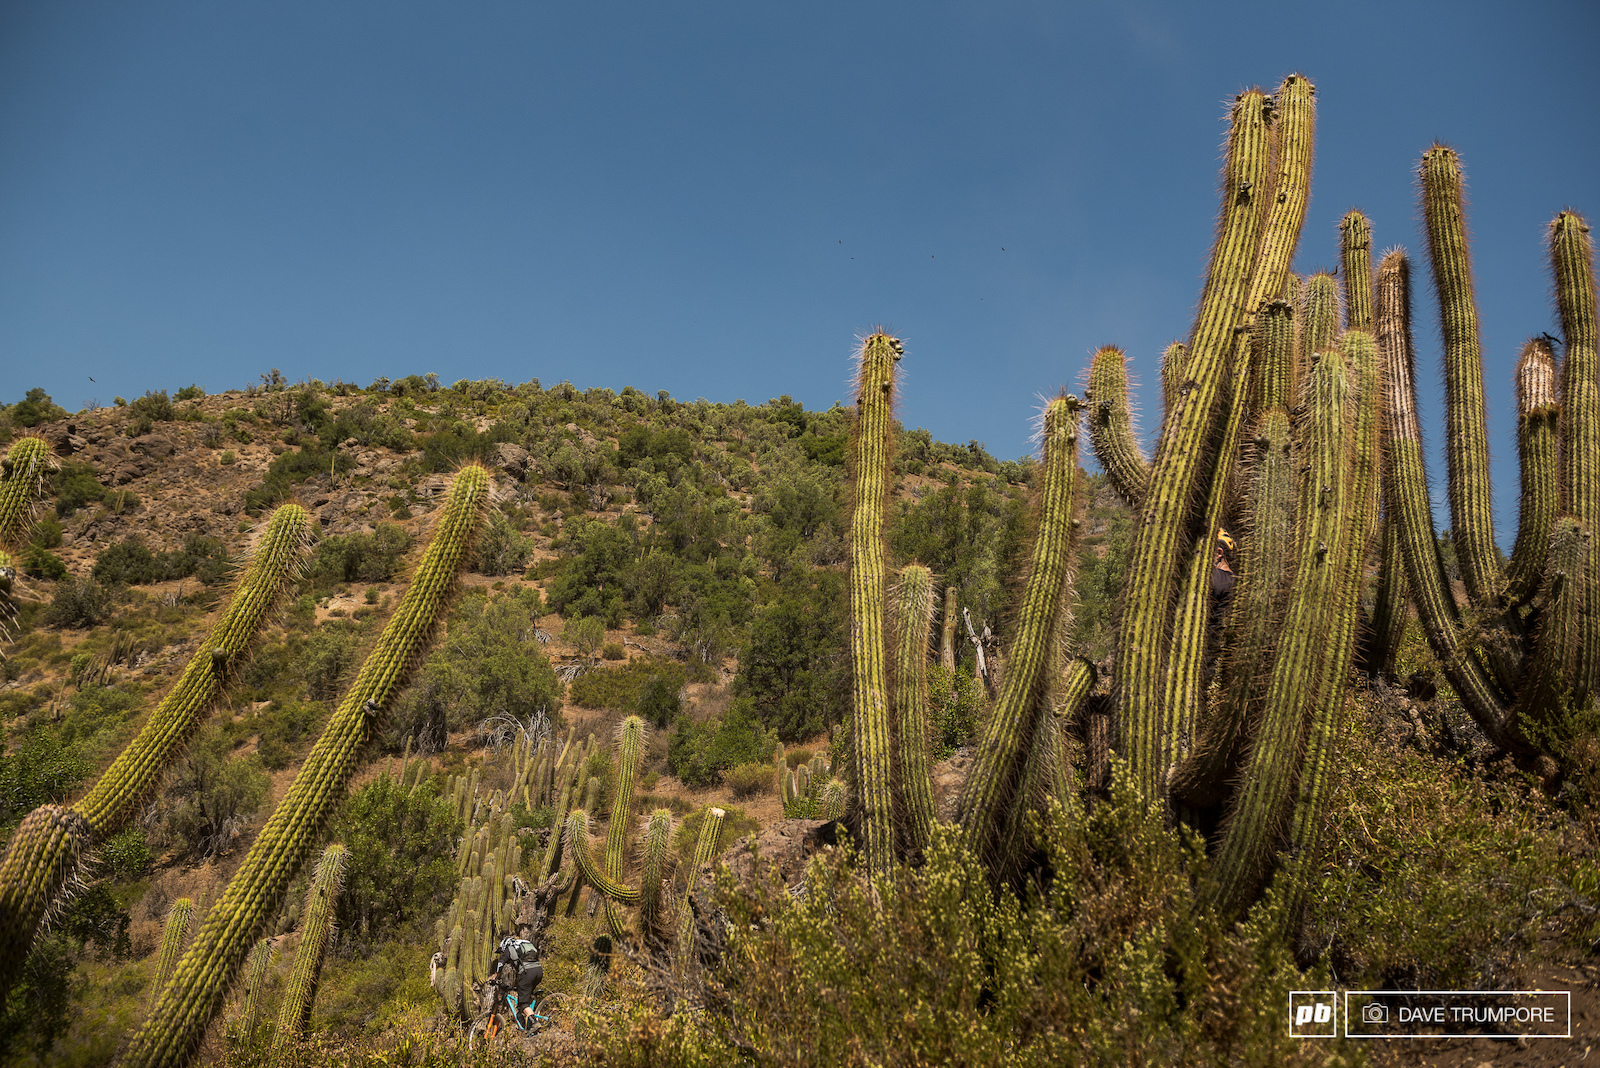 Jesse Melamed gets dwarfed by some massive cactus on Stage 2.